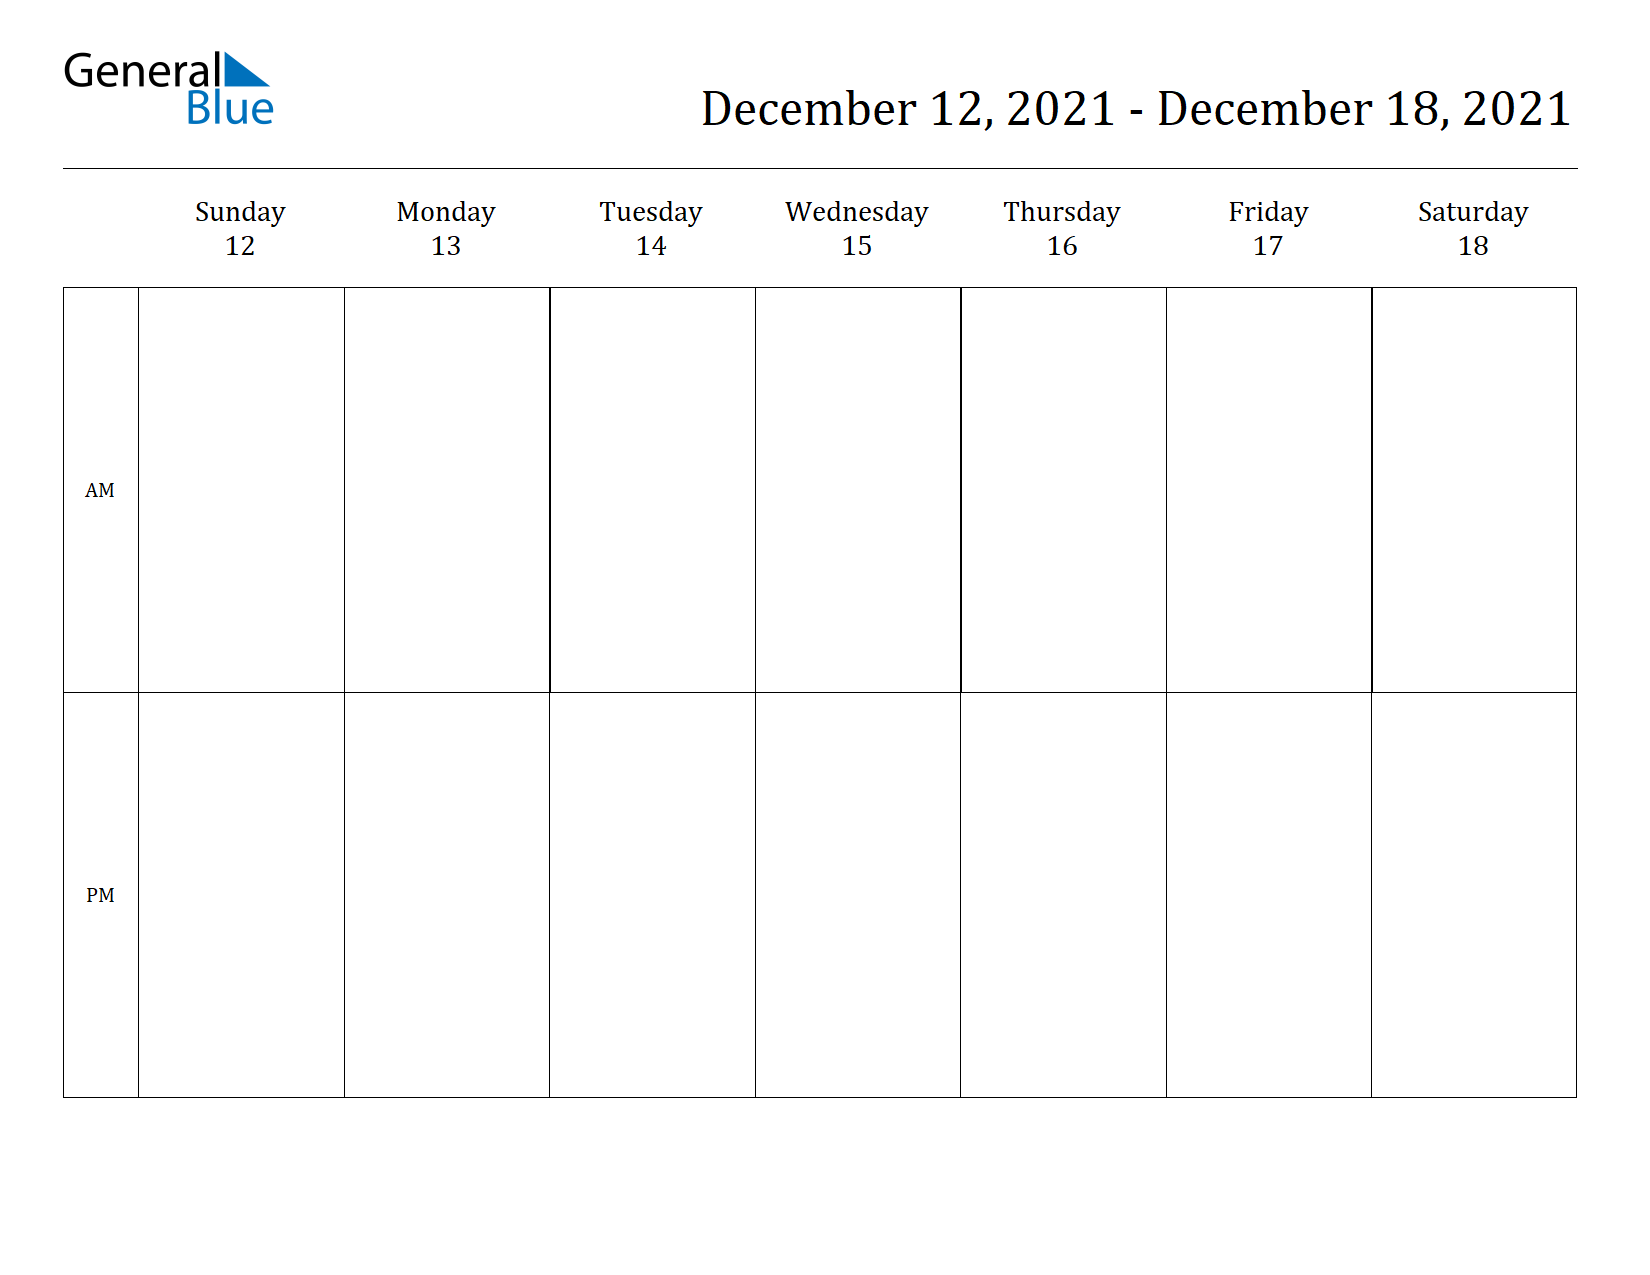 Weekly Calendar for Dec 12, 2021 to Dec 18, 2021